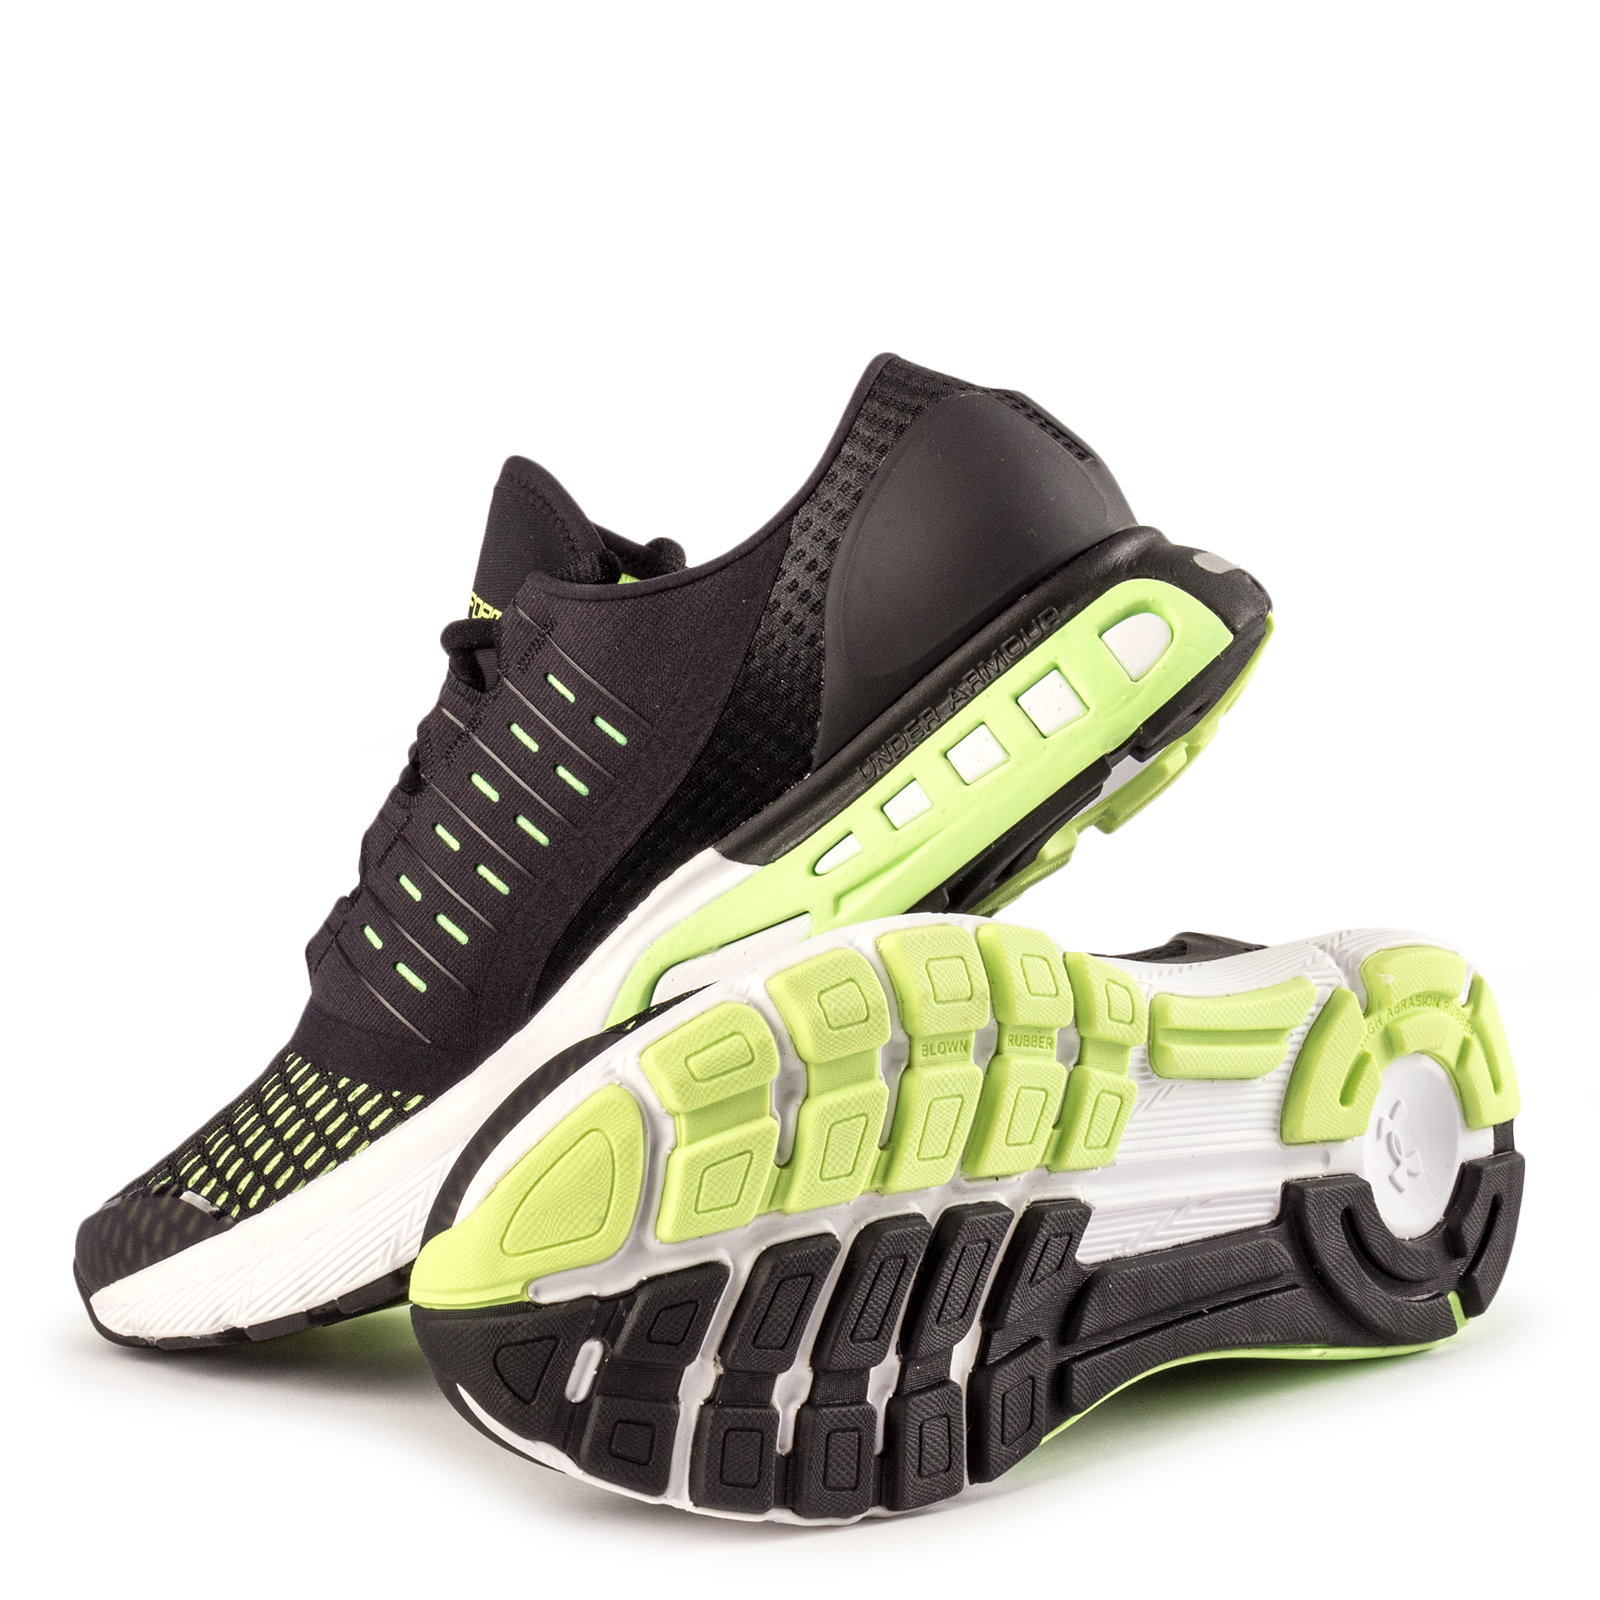 available from 10.11 Under Armour running shoes men  1285653-003 xiaomi smart shoes mijia running shoes